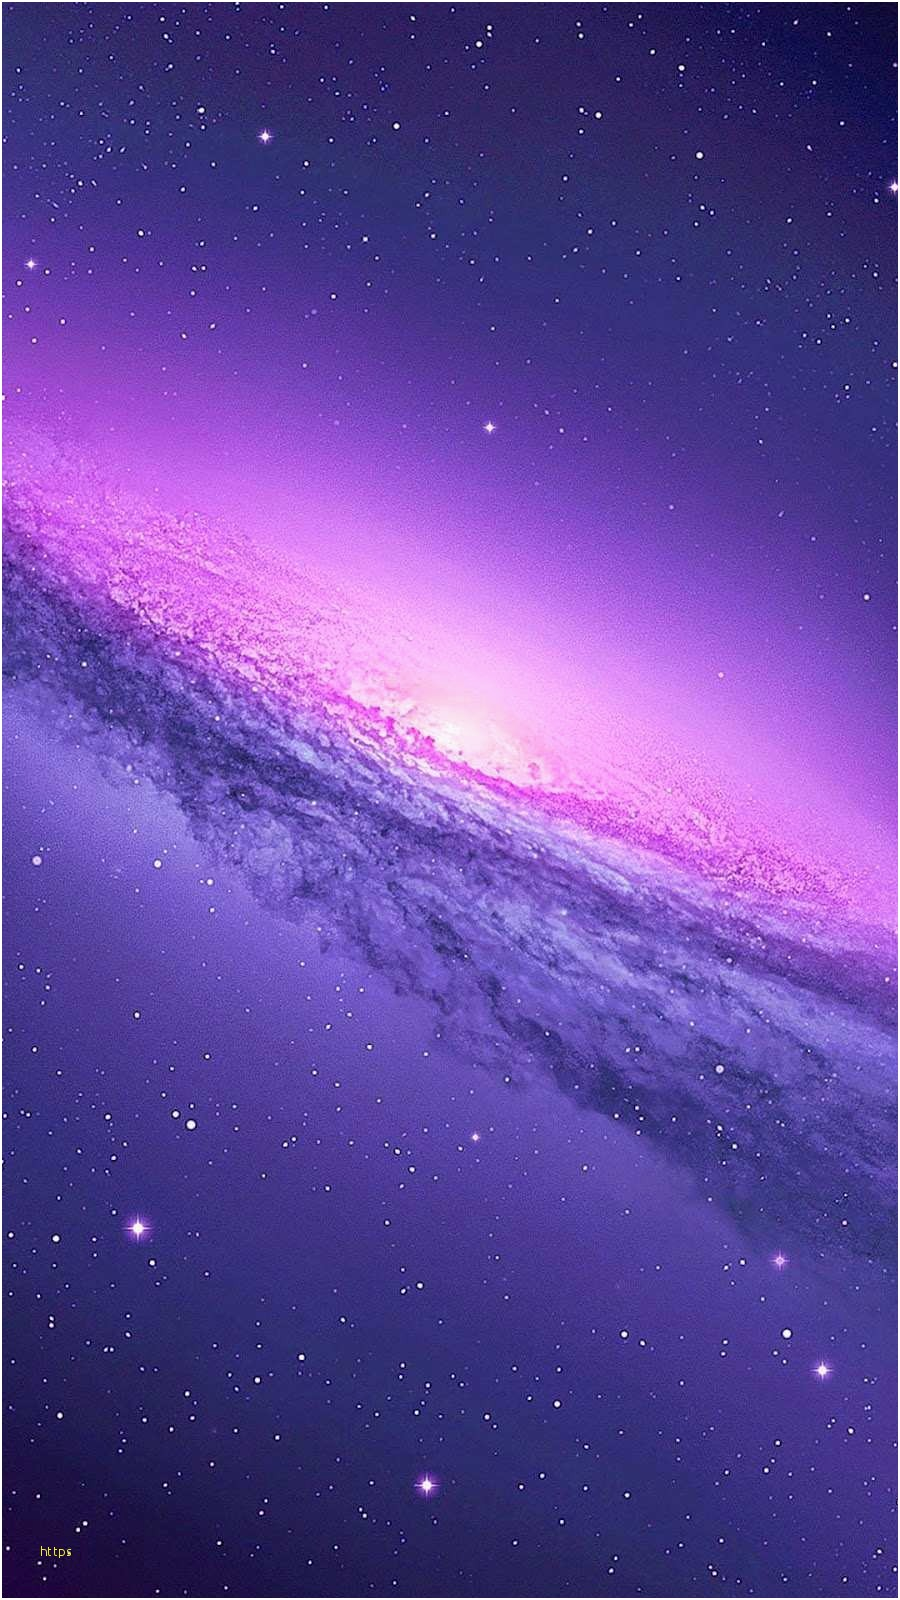 Galaxy Iphone 5 Wallpaper Lovely Samsung Galaxy S6 - 4k Pictures For Iphone X , HD Wallpaper & Backgrounds